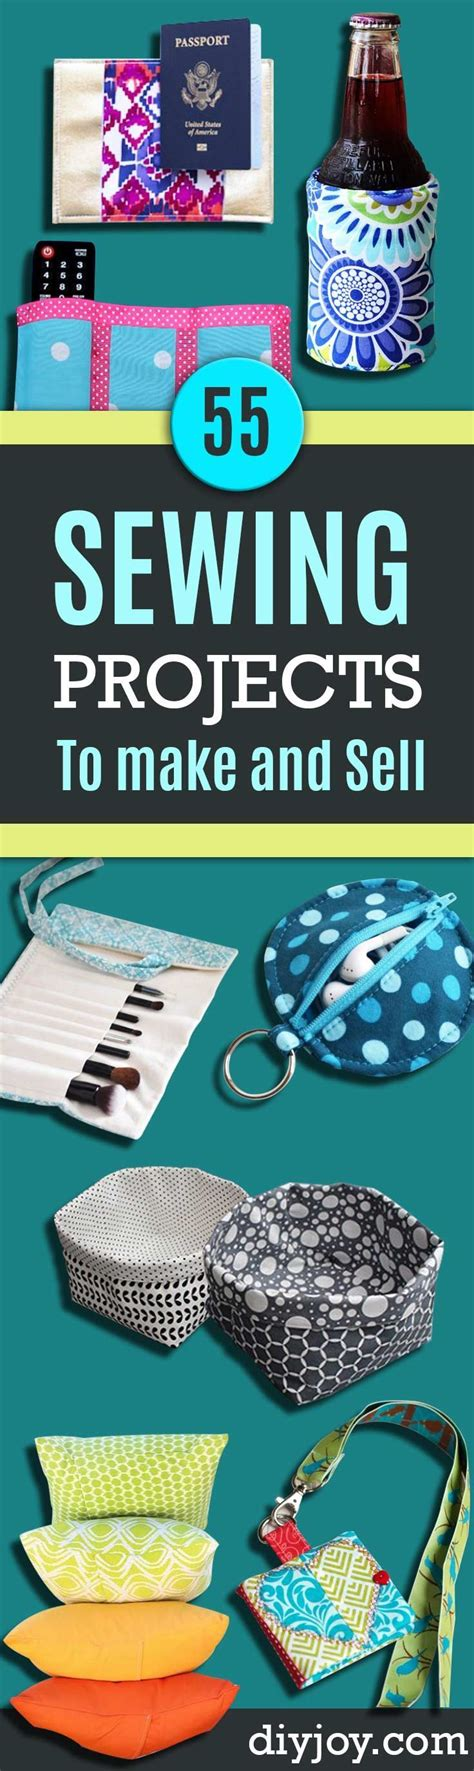 diy projects to make money 324 best images about cool diy ideas on crafts cool diy projects and diy and home